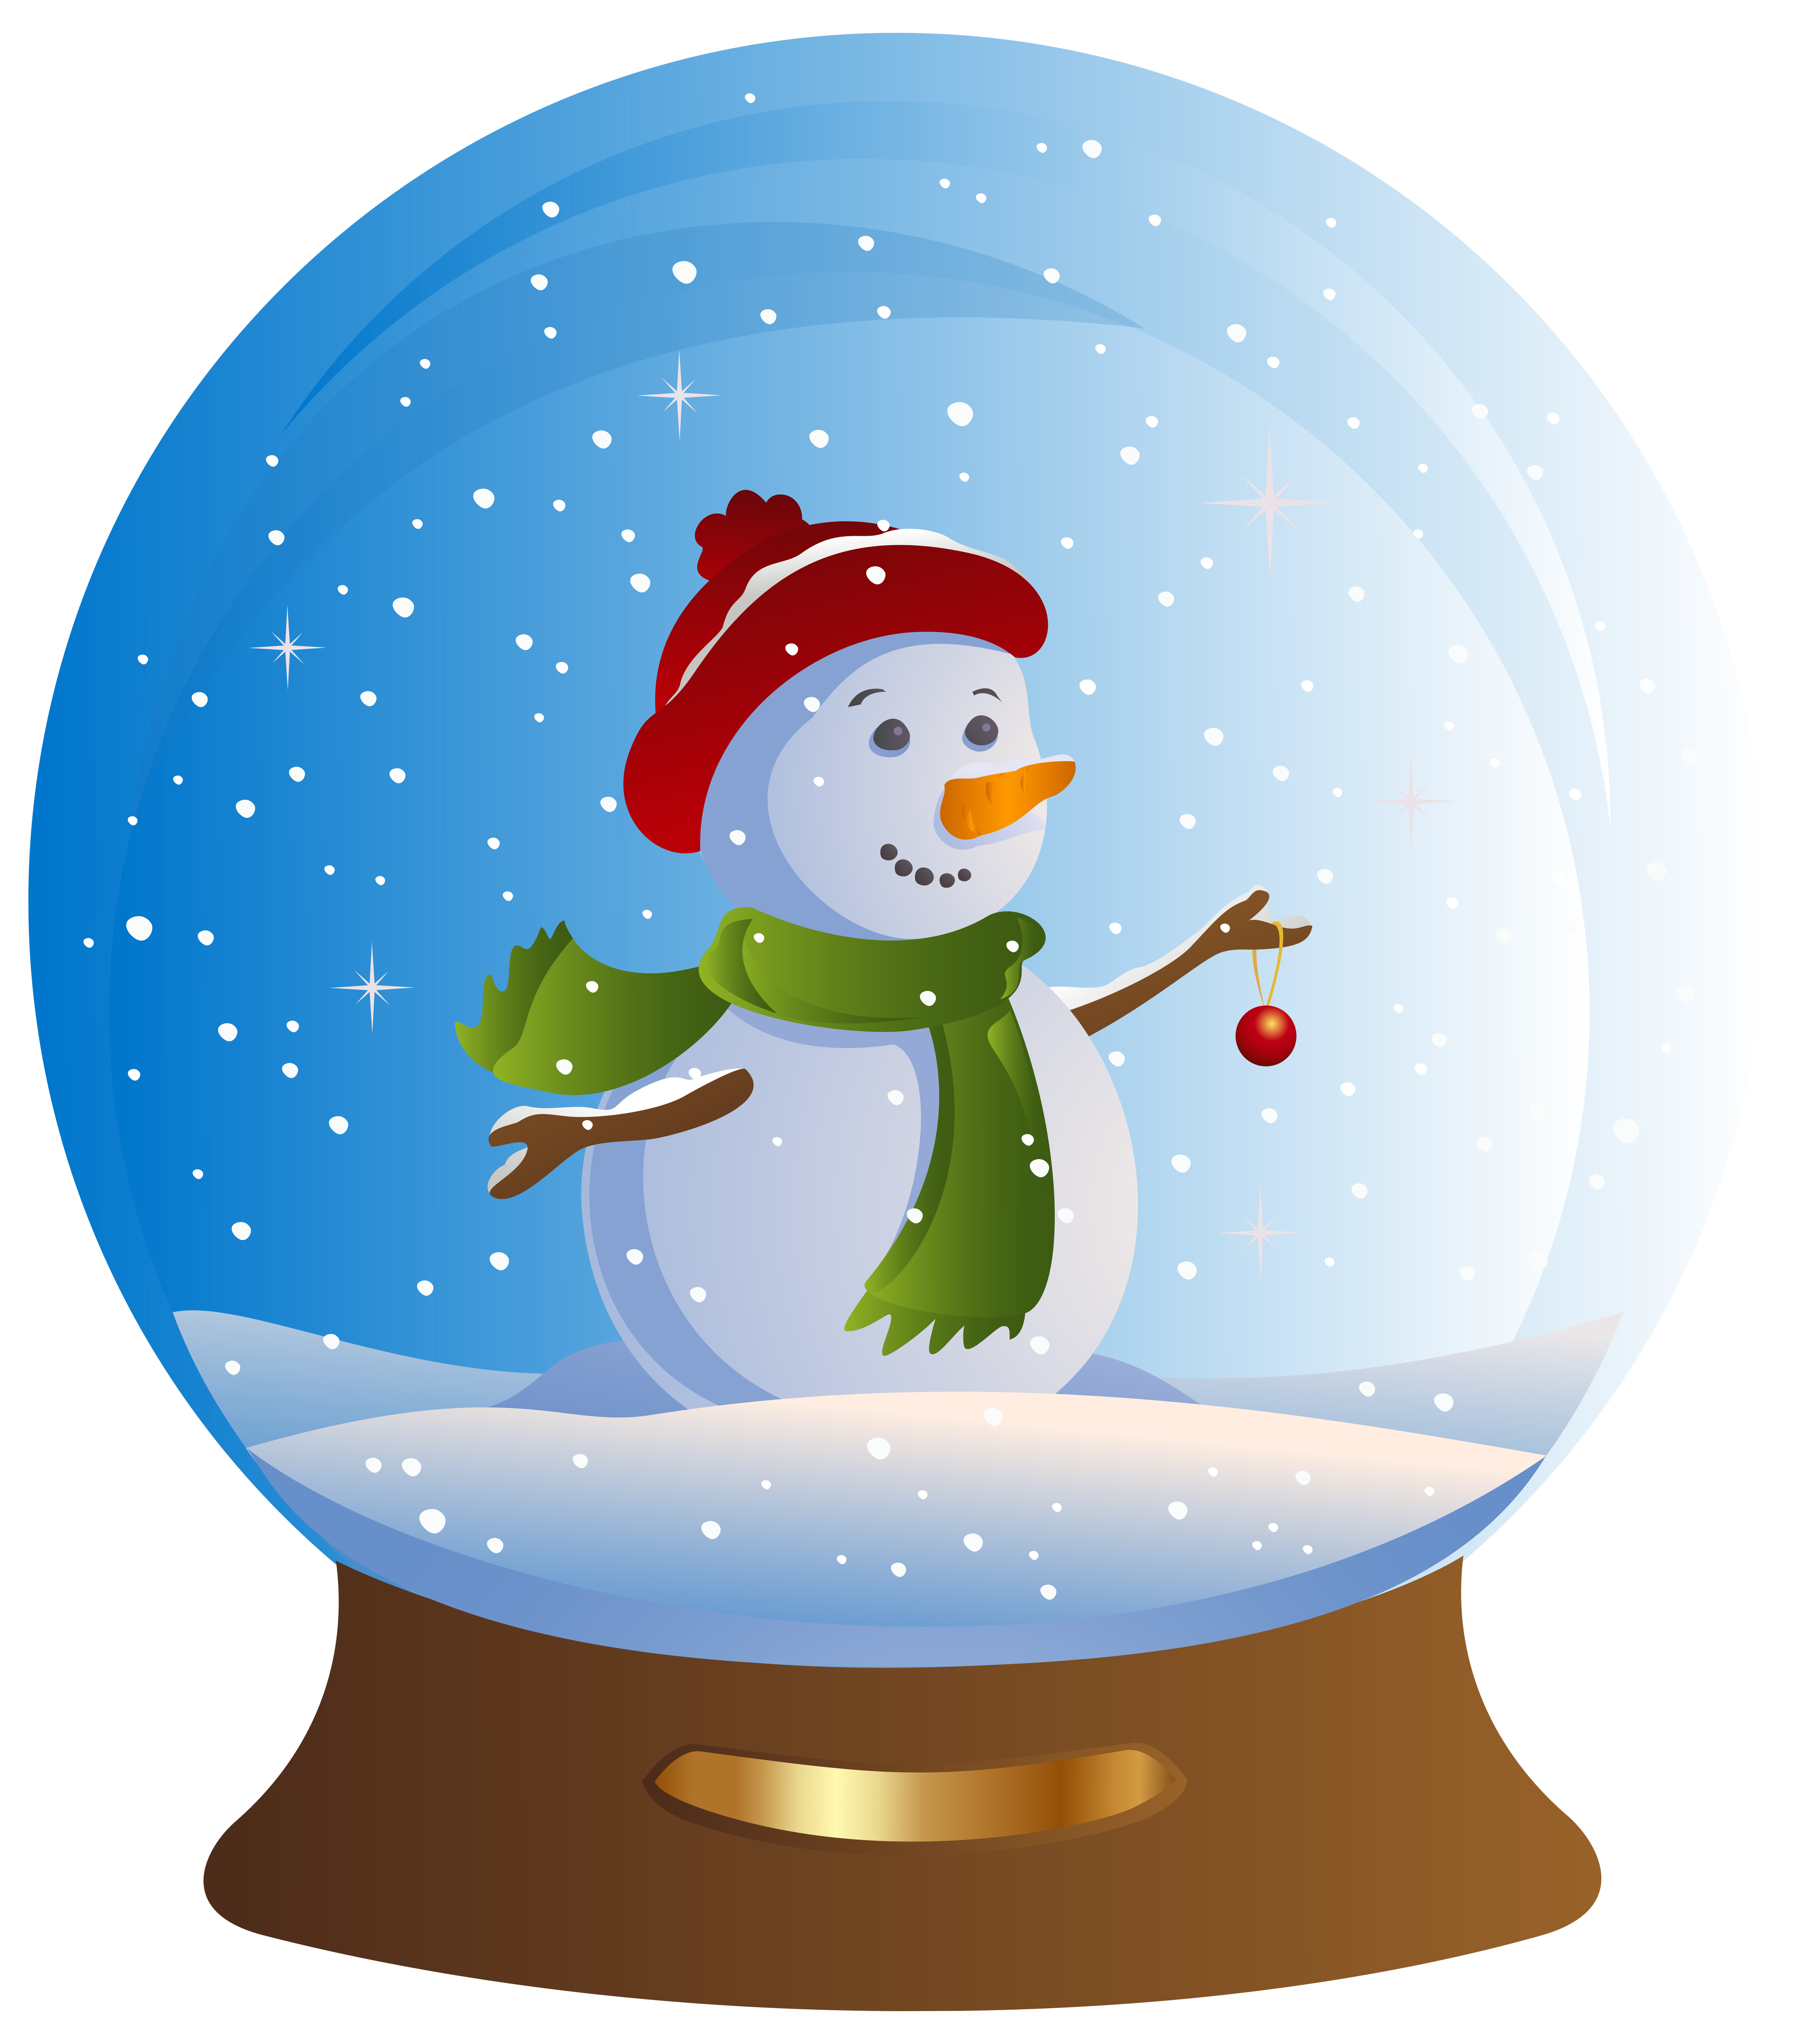 Snowglobe drawing snowman. Collection of snow